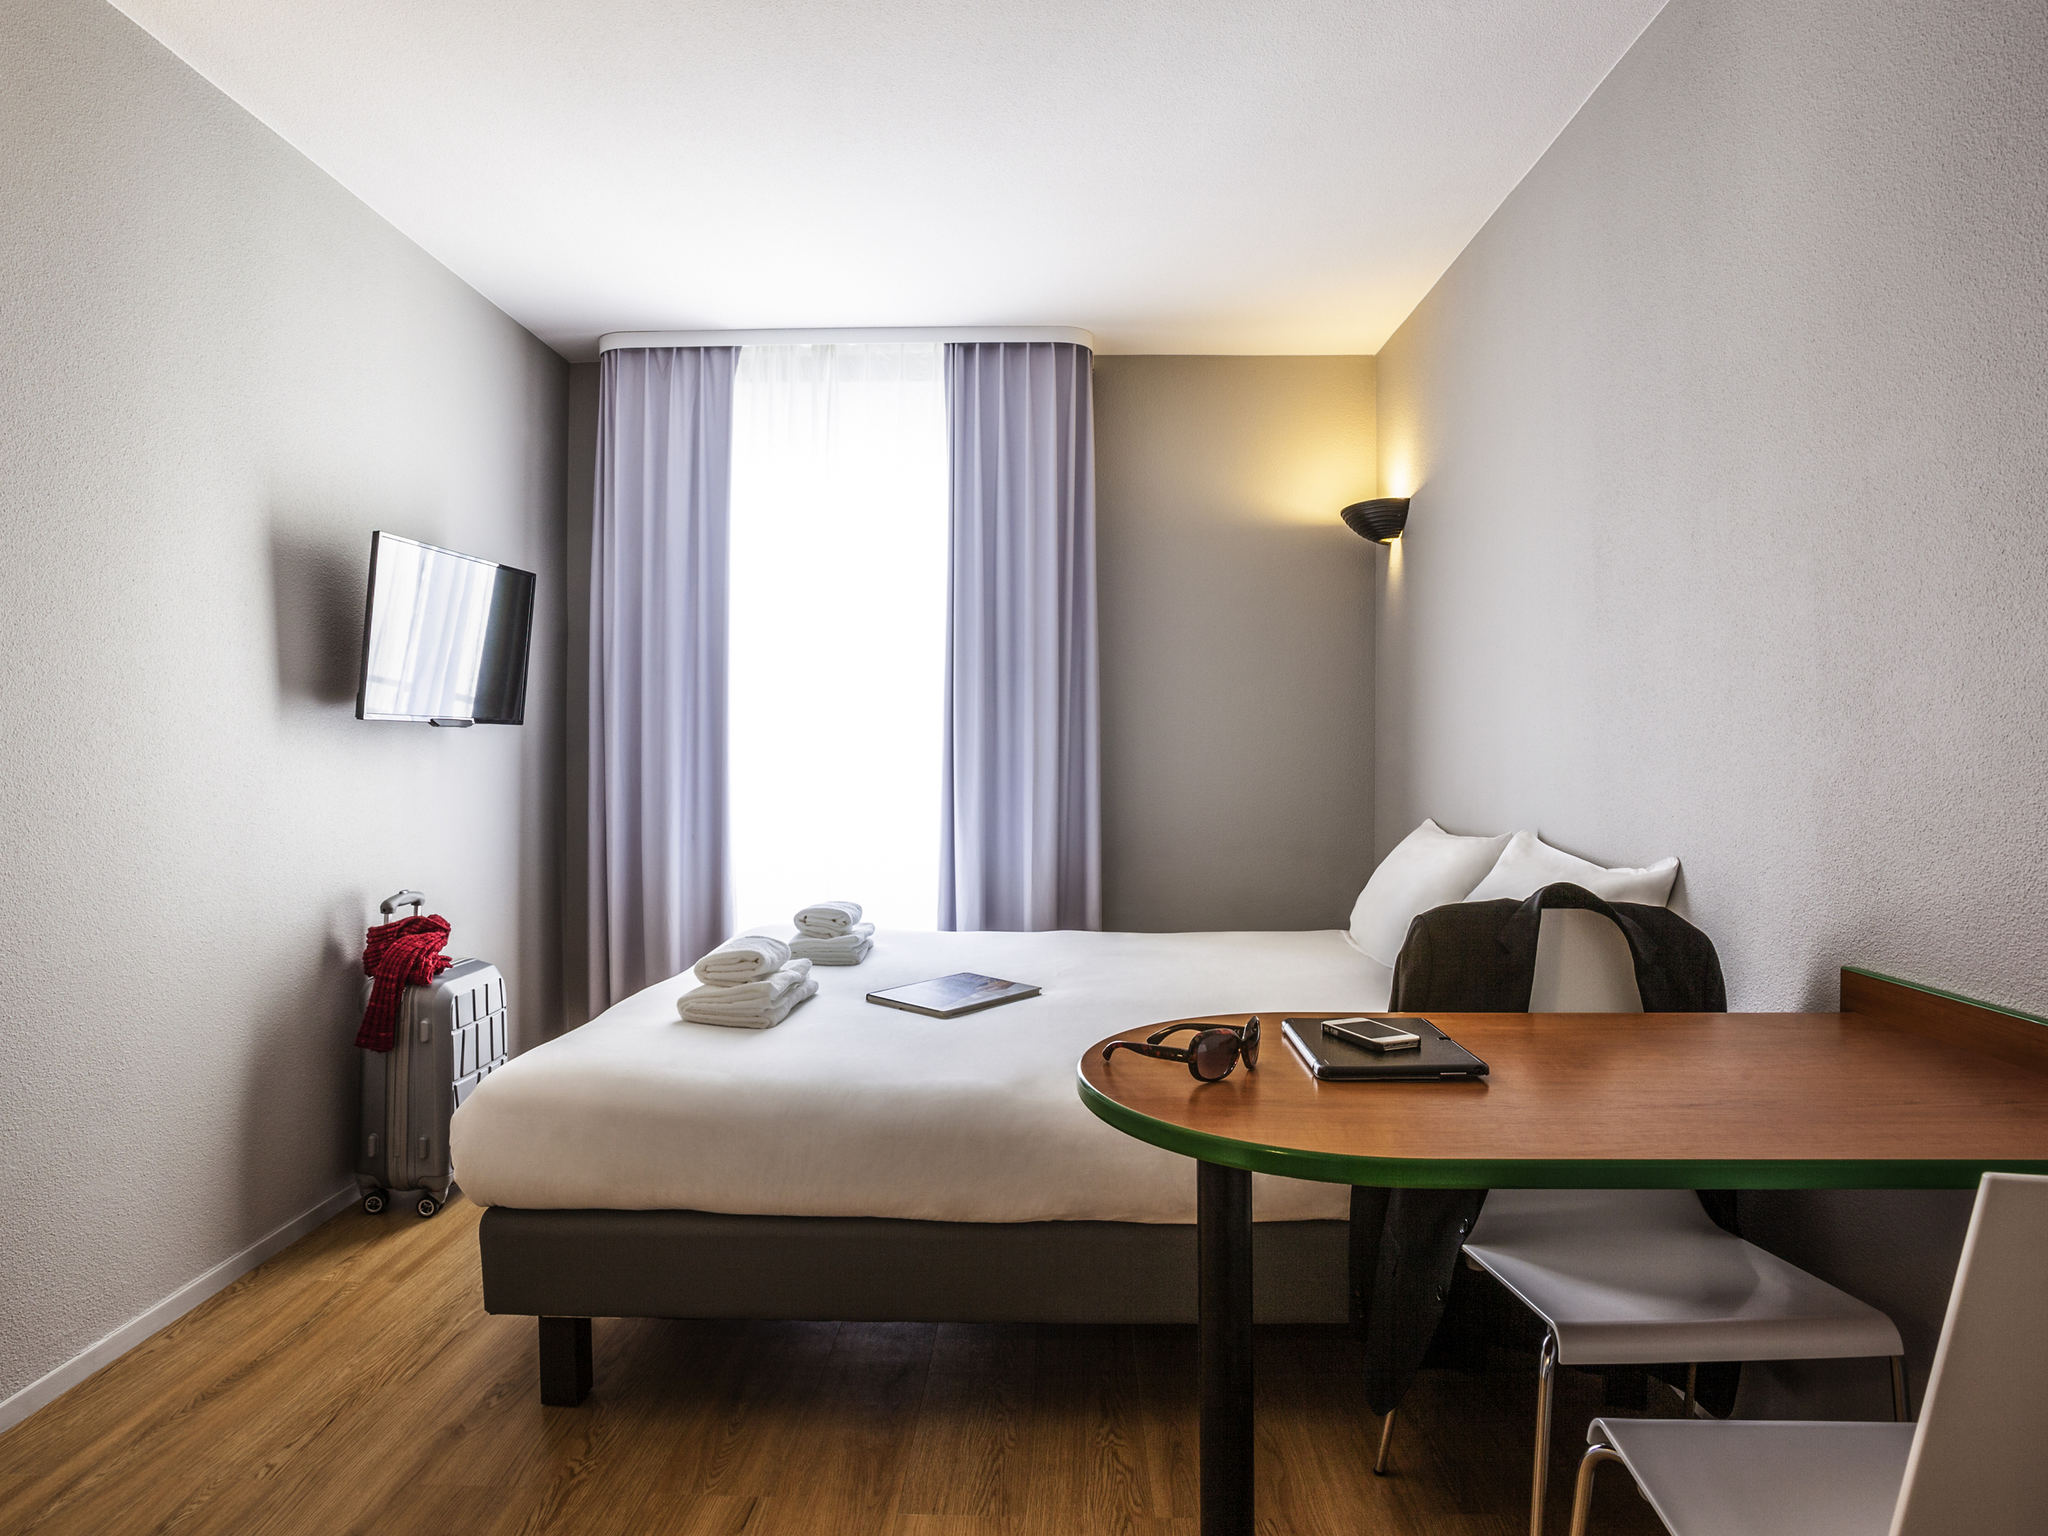 Hotel – Aparthotel Adagio access Paris Maisons-Alfort